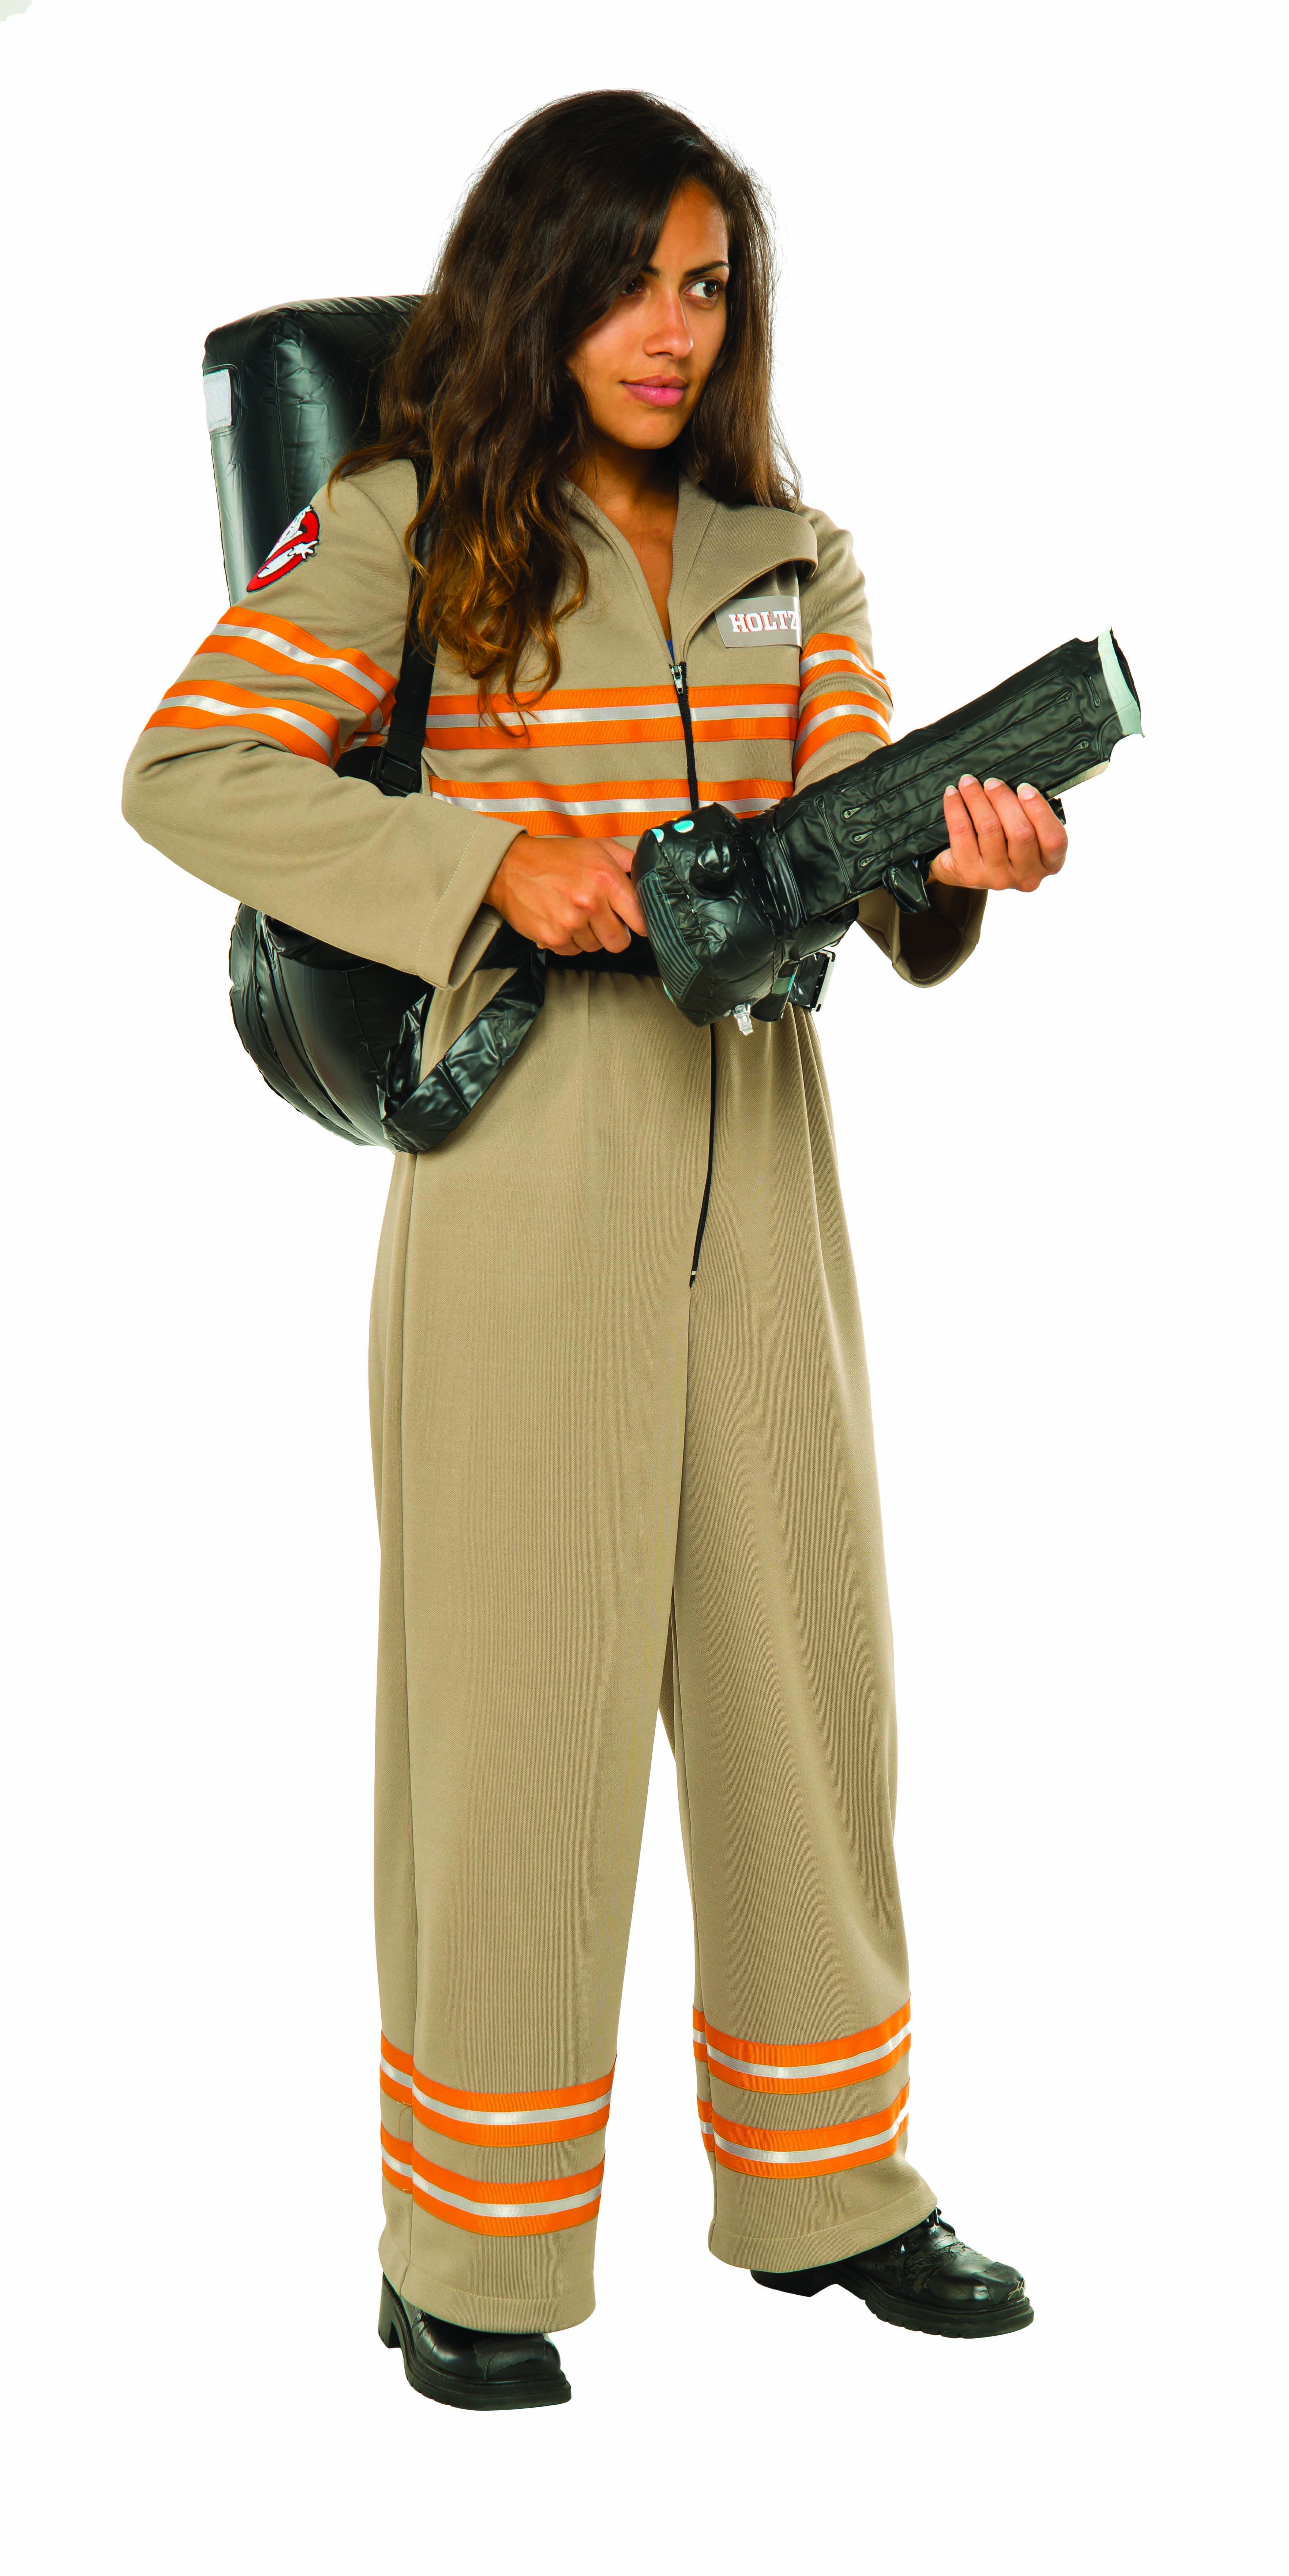 New Ghostbusters Costumes Coming This Year Ghostbusters News